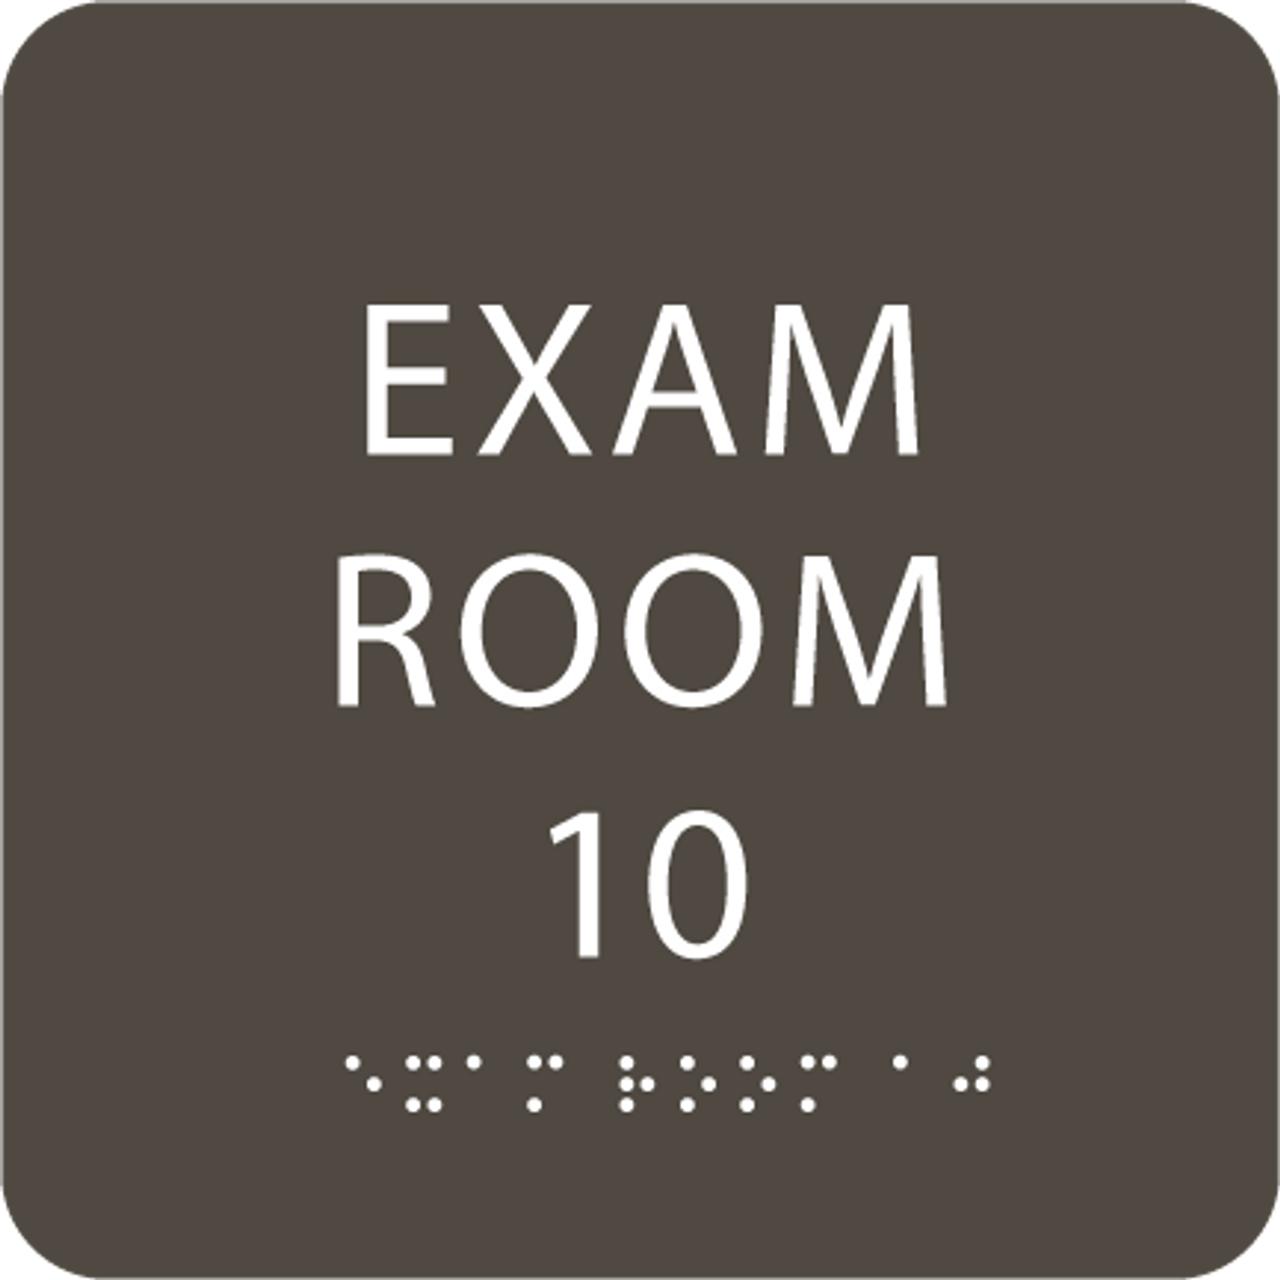 Olive Exam Room 10 Sign w/ ADA Braille